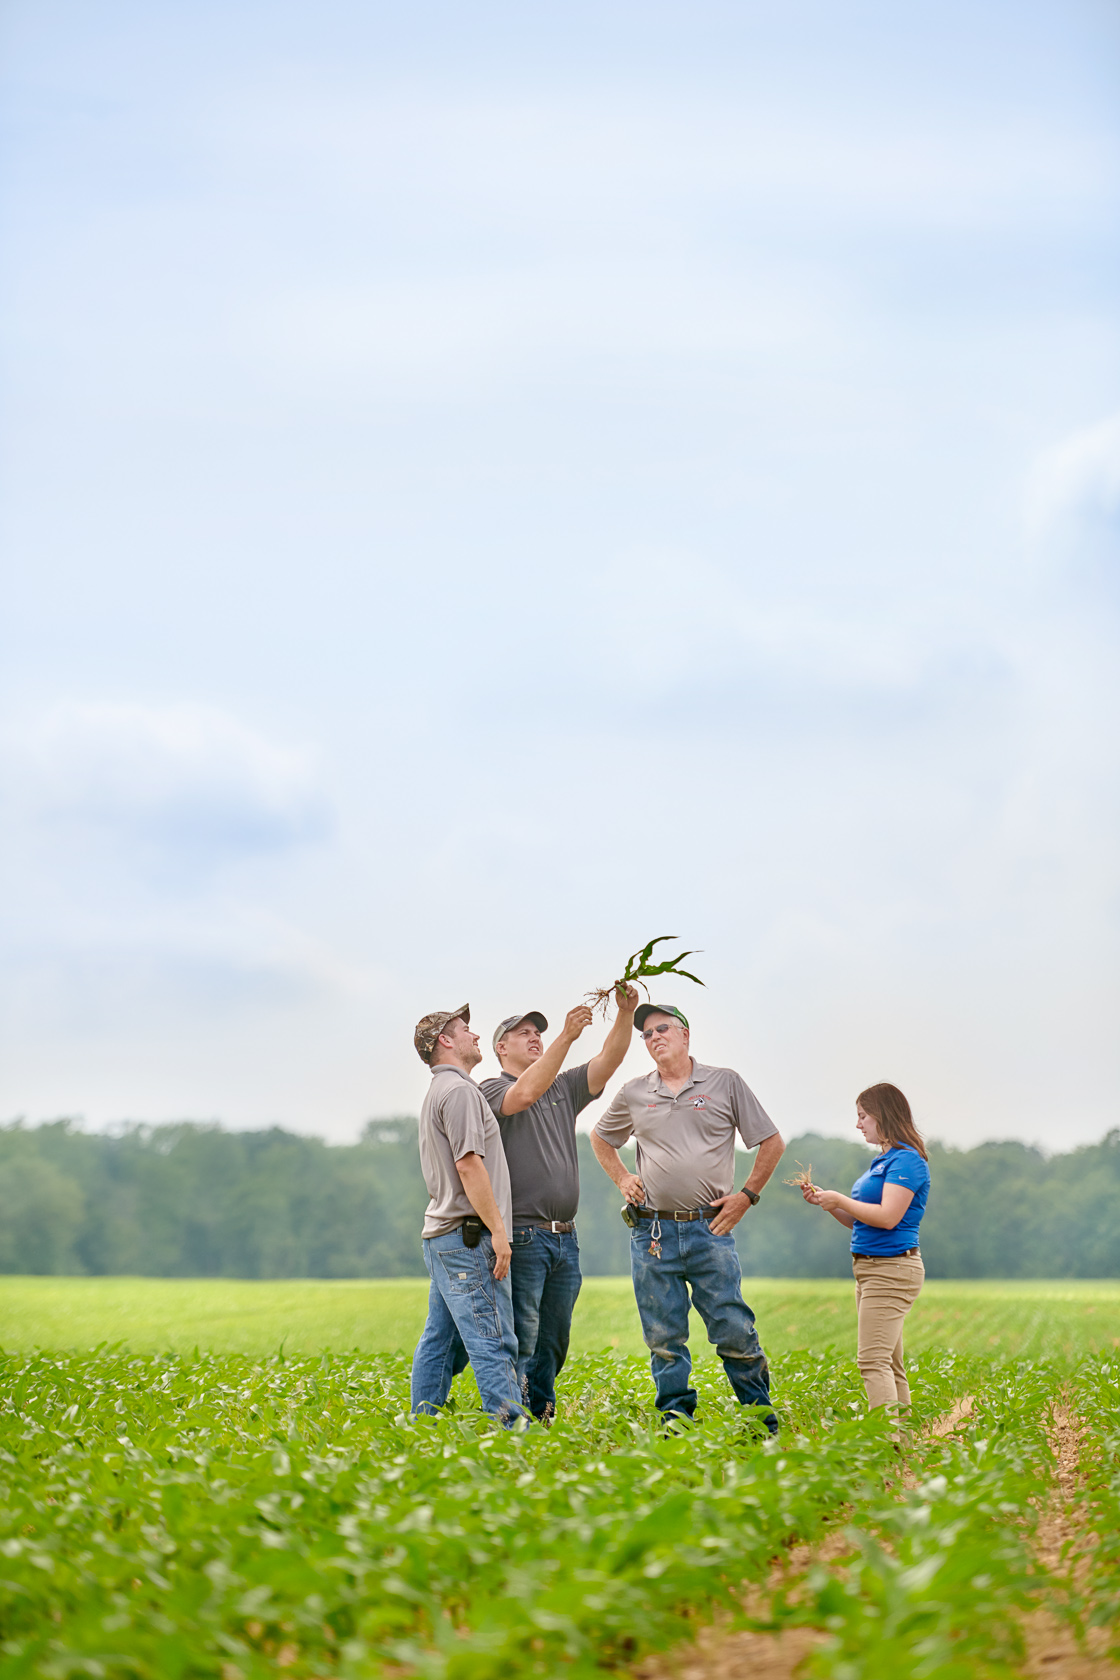 Wellacrest Crop Inspection | Editorial Photographer